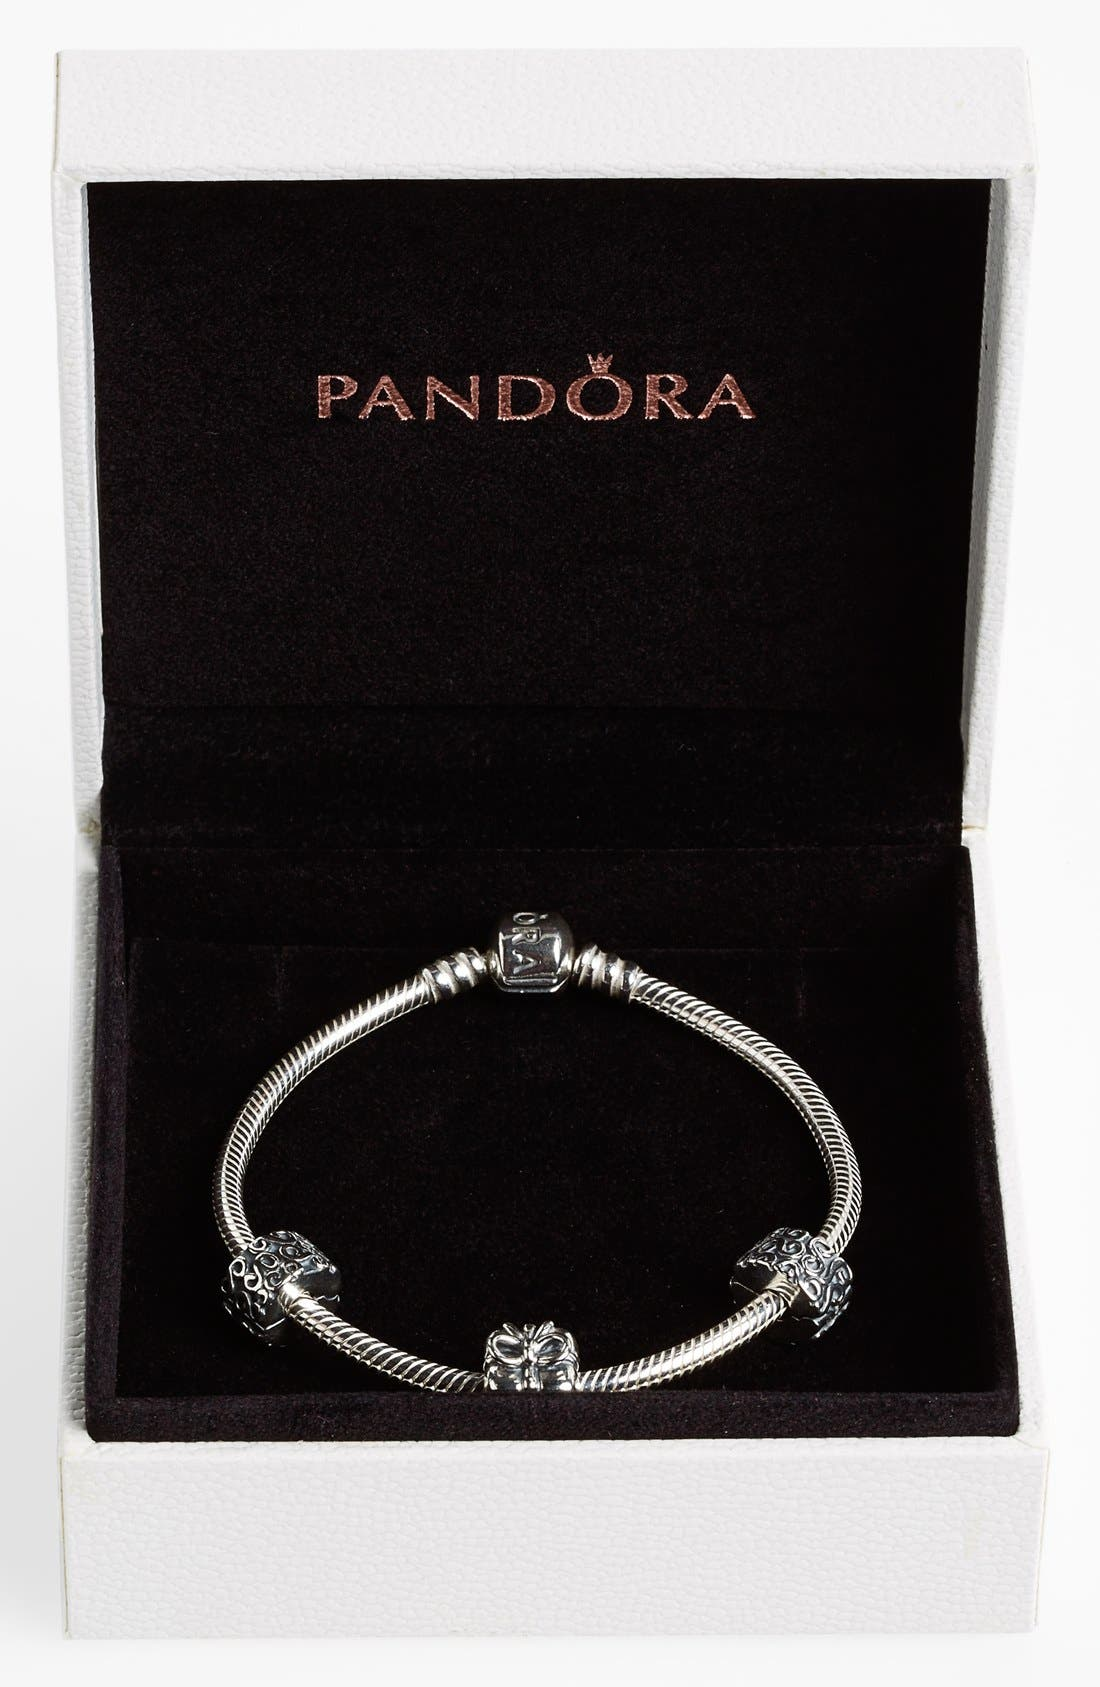 Alternate Image 2  - PANDORA Boxed Holiday Bracelet Gift Set (Limited Edition) ($160 Value)